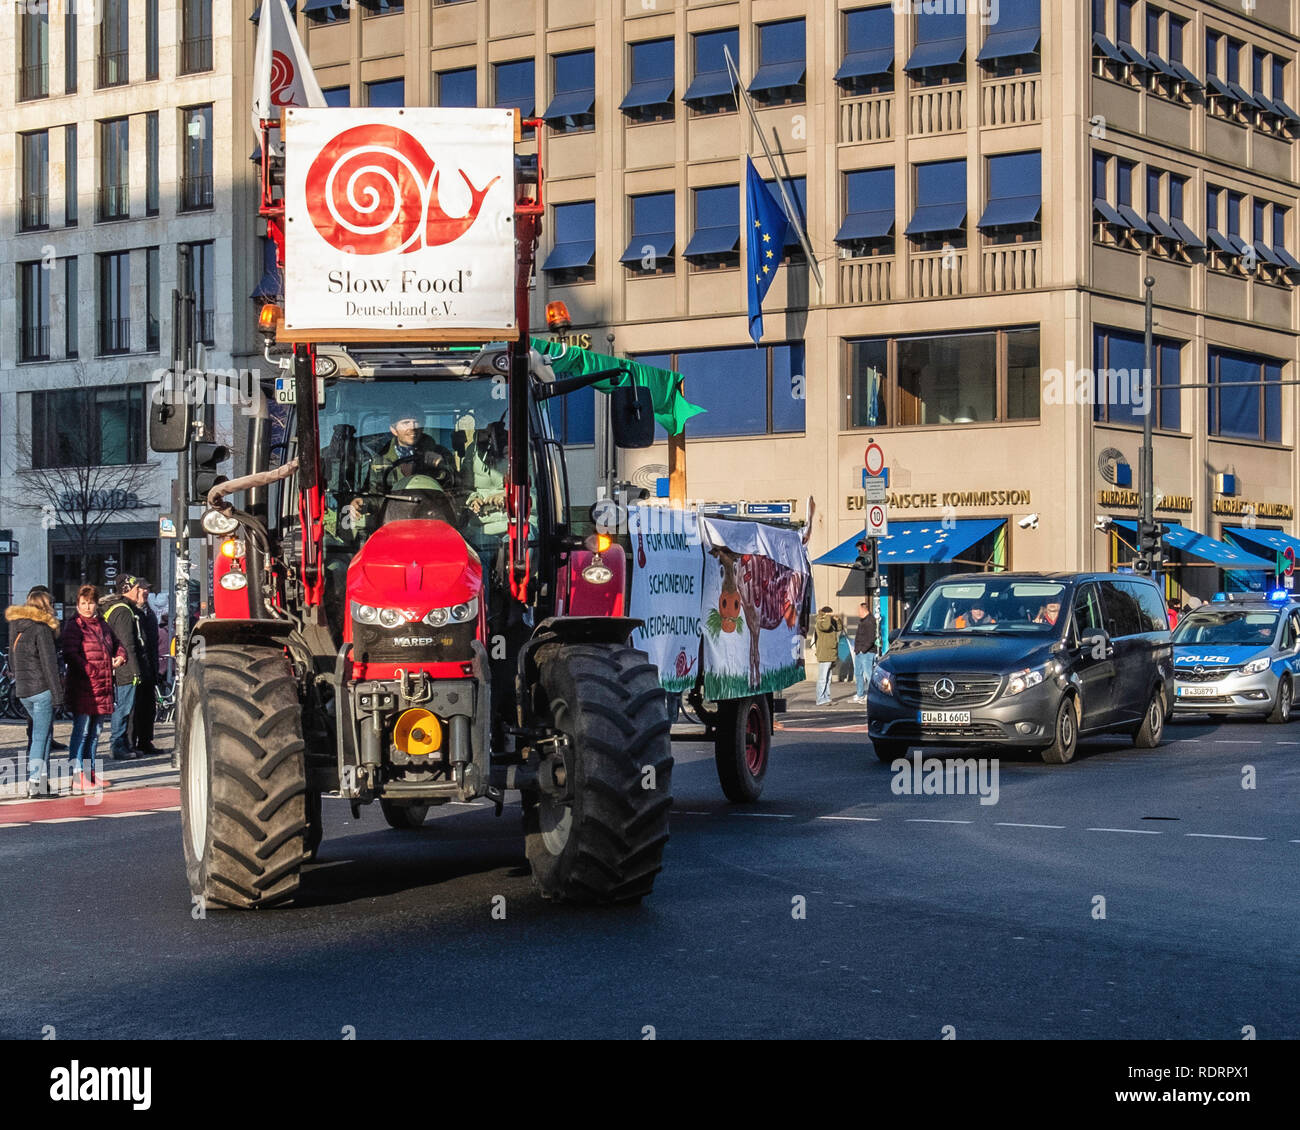 Berlin, Gemany, 19 January 2019. Farmers protest against the EU farm subsidies in Germany. A Parade of tractors  drove past the European Commission building in Unter den Linden as they took part in the protest march against current agricultural policy. Activists protest that large farming enterprises are favoured over smaller farms that support environmentally friendly methods. credit: Eden Breitz/Alamy Live News Credit: Eden Breitz/Alamy Live News - Stock Image